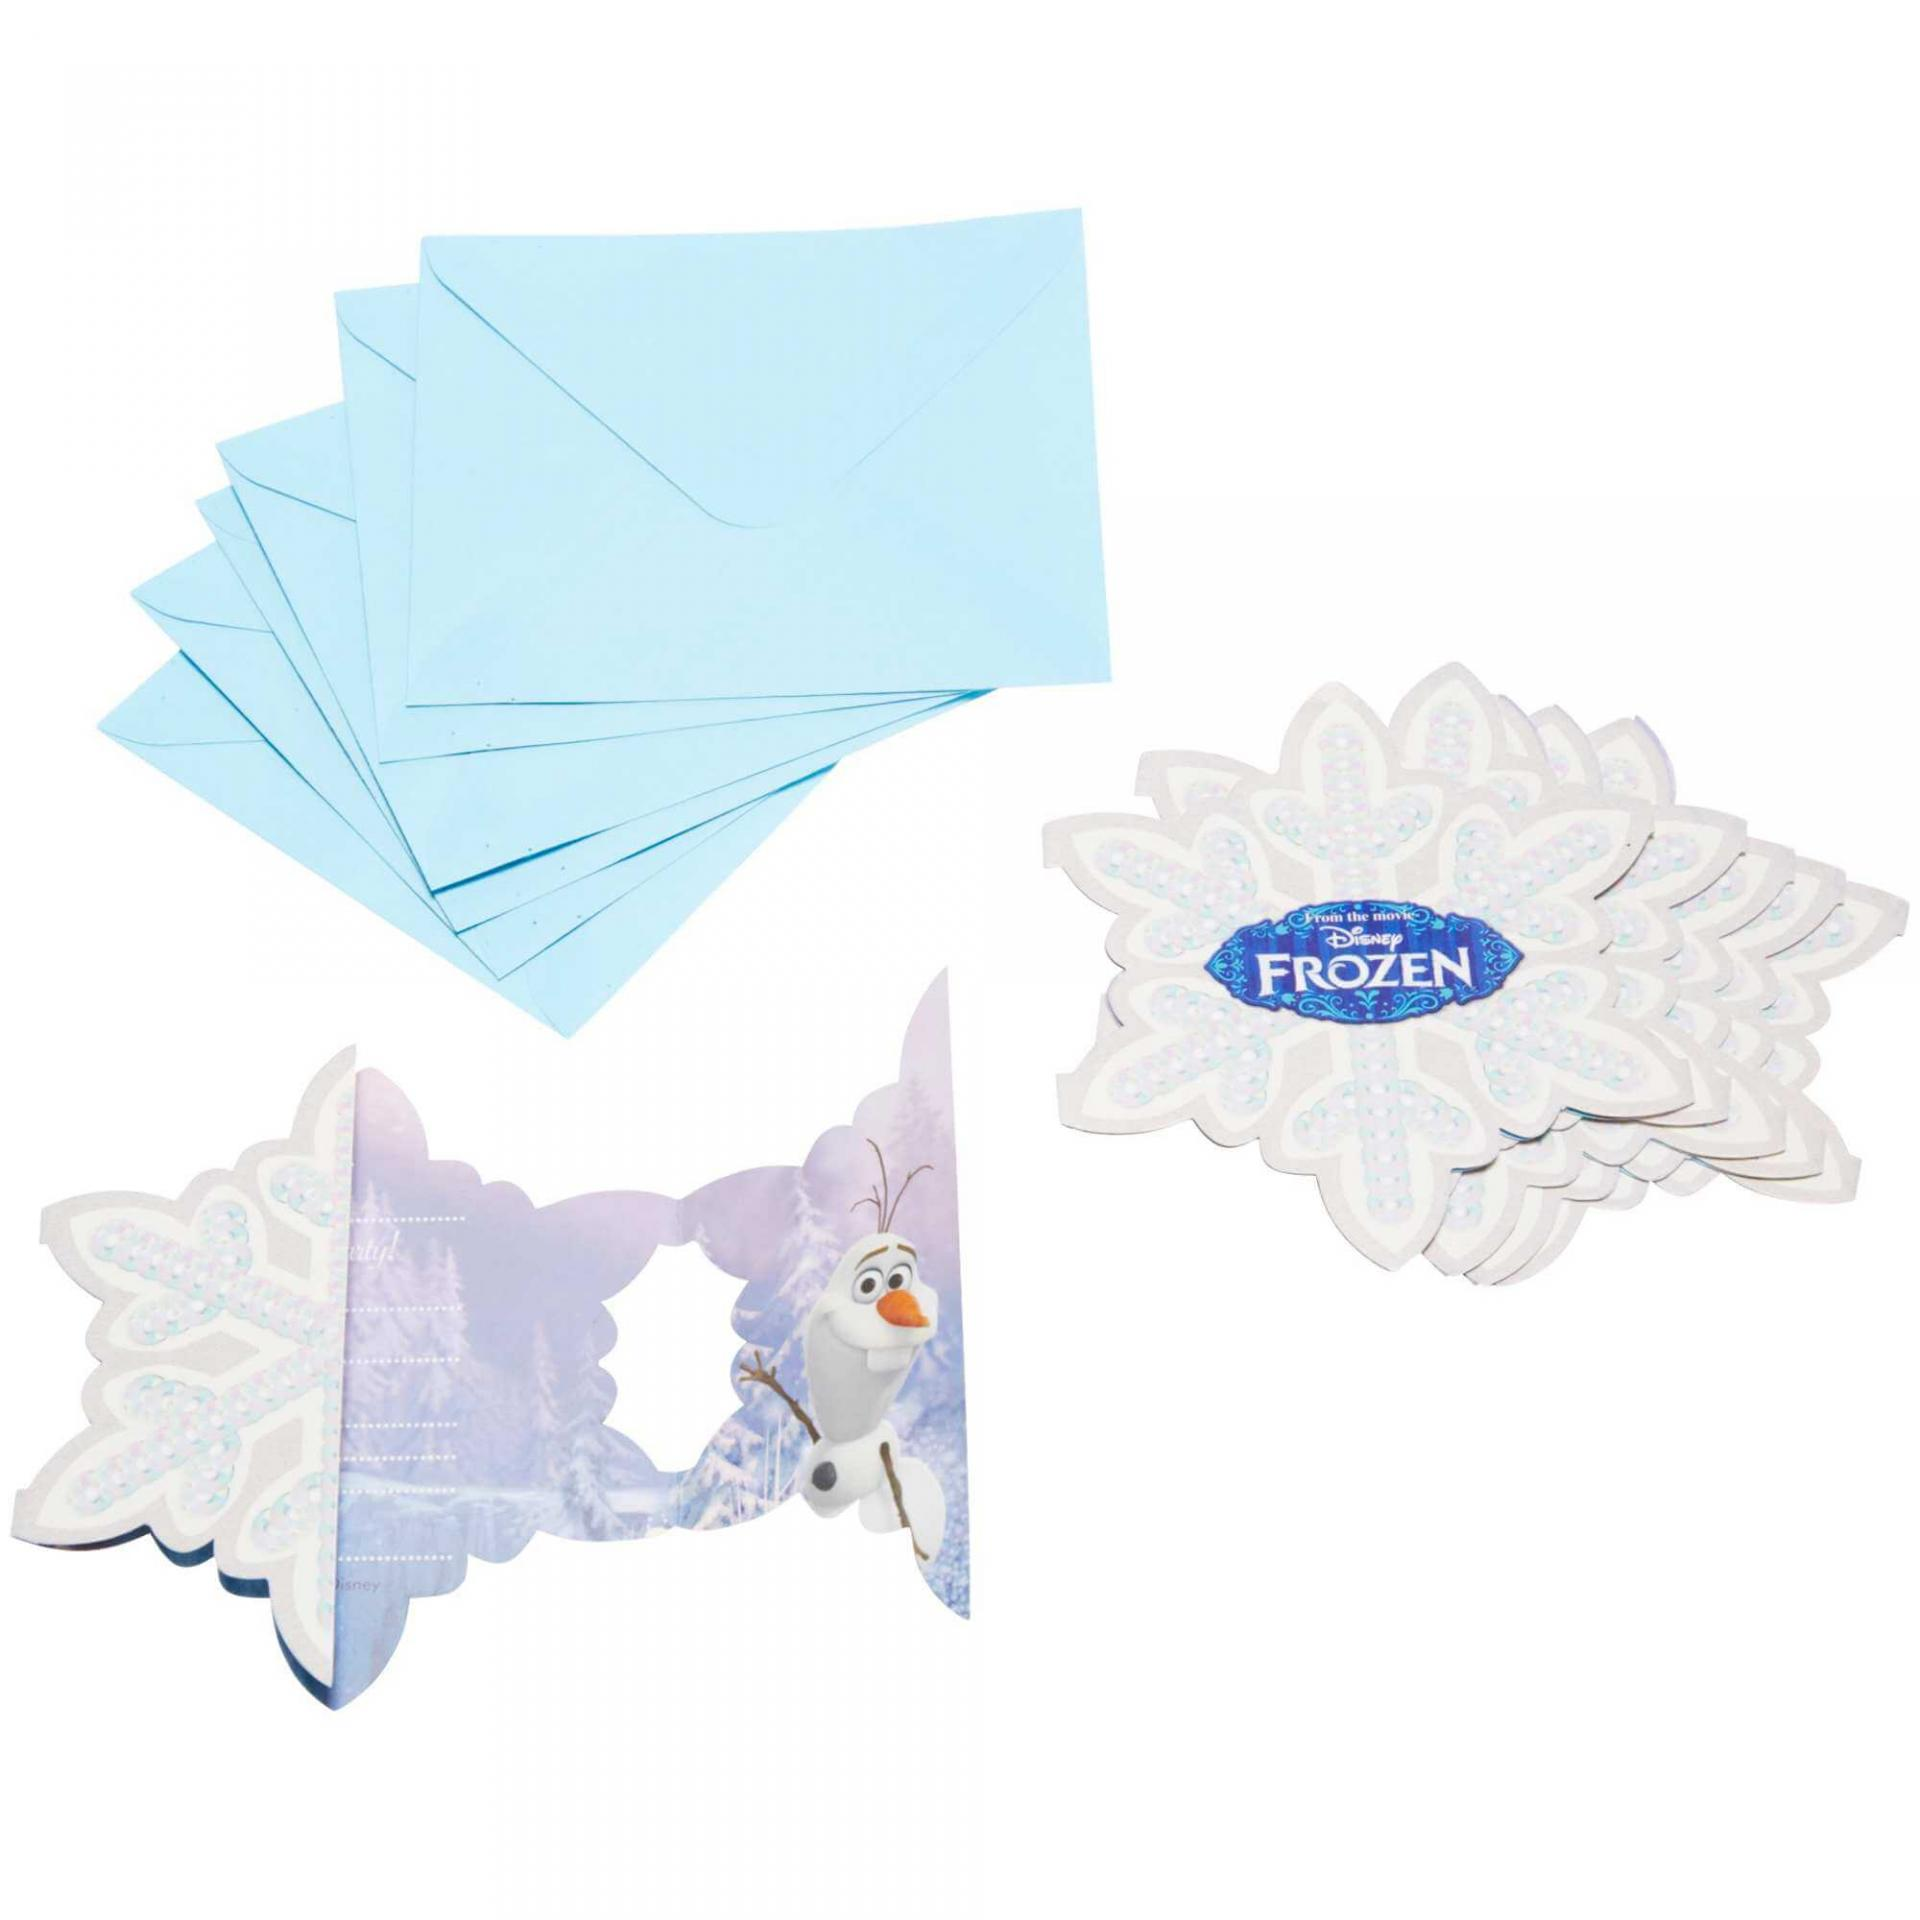 Cartes invitations la reine des neiges bleu grise 2